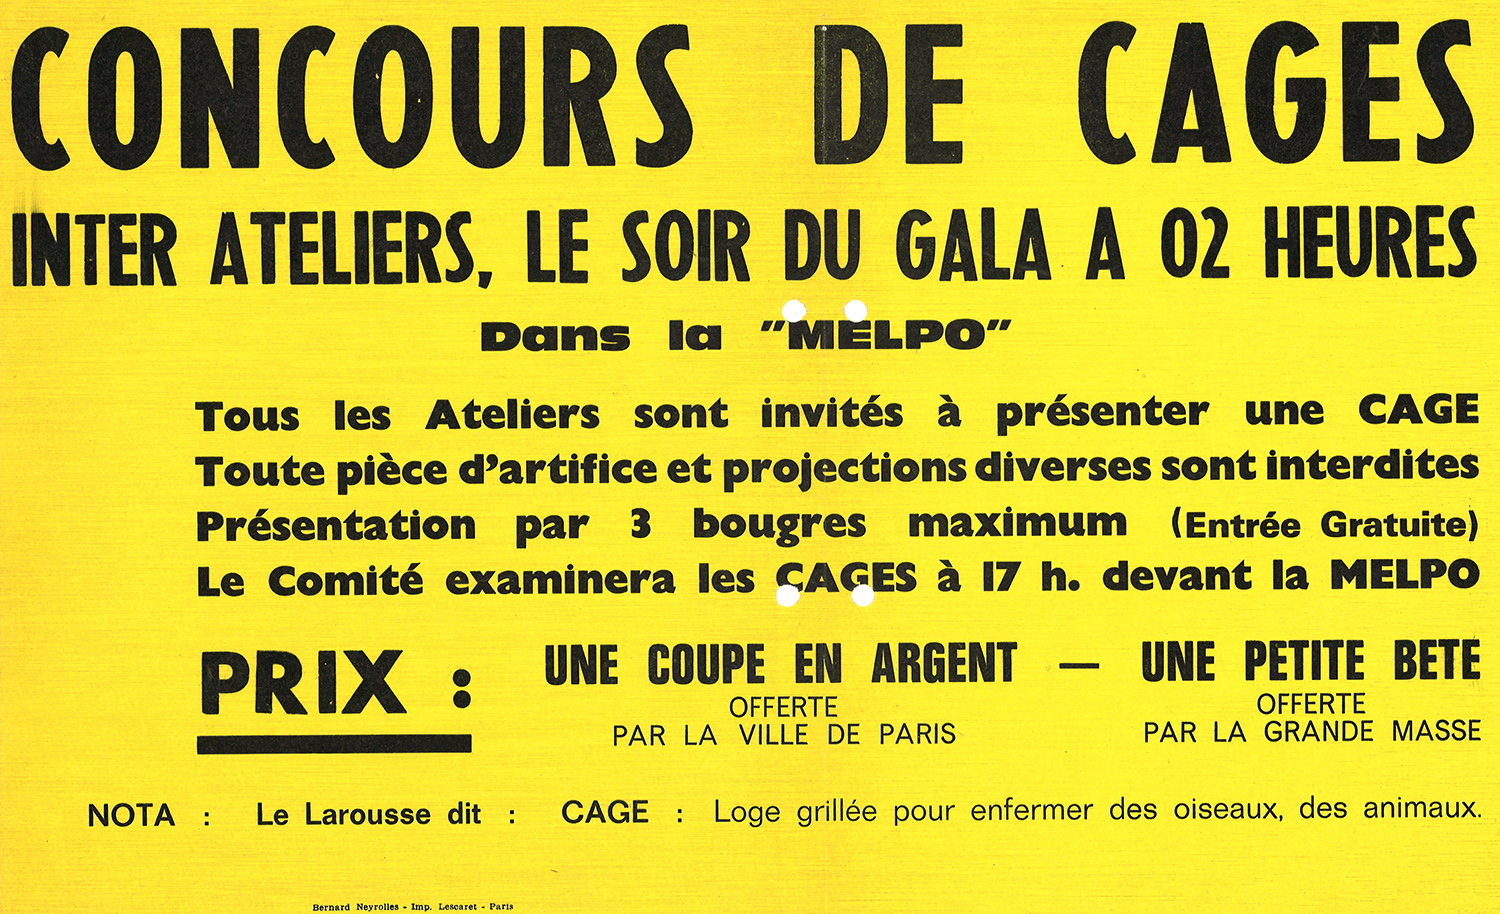 1966_CONCOURS_Cages.jpg